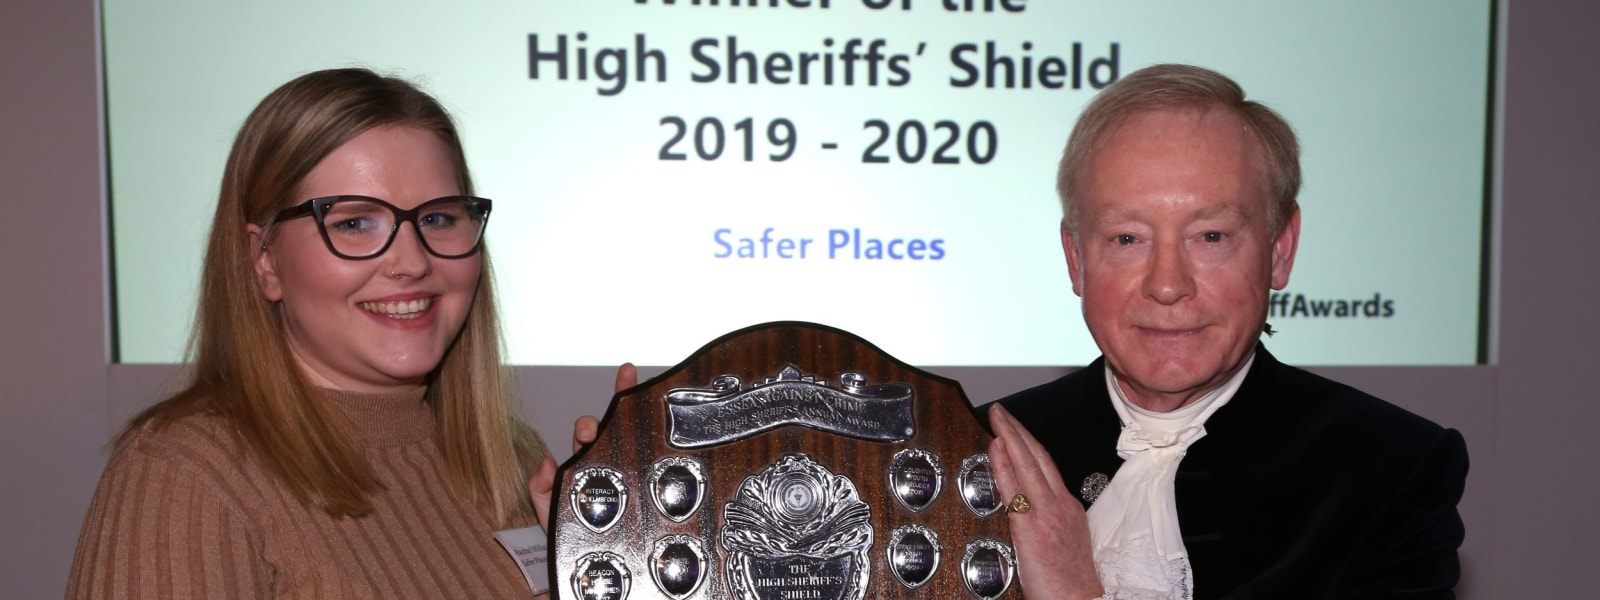 High Sheriff's Shield